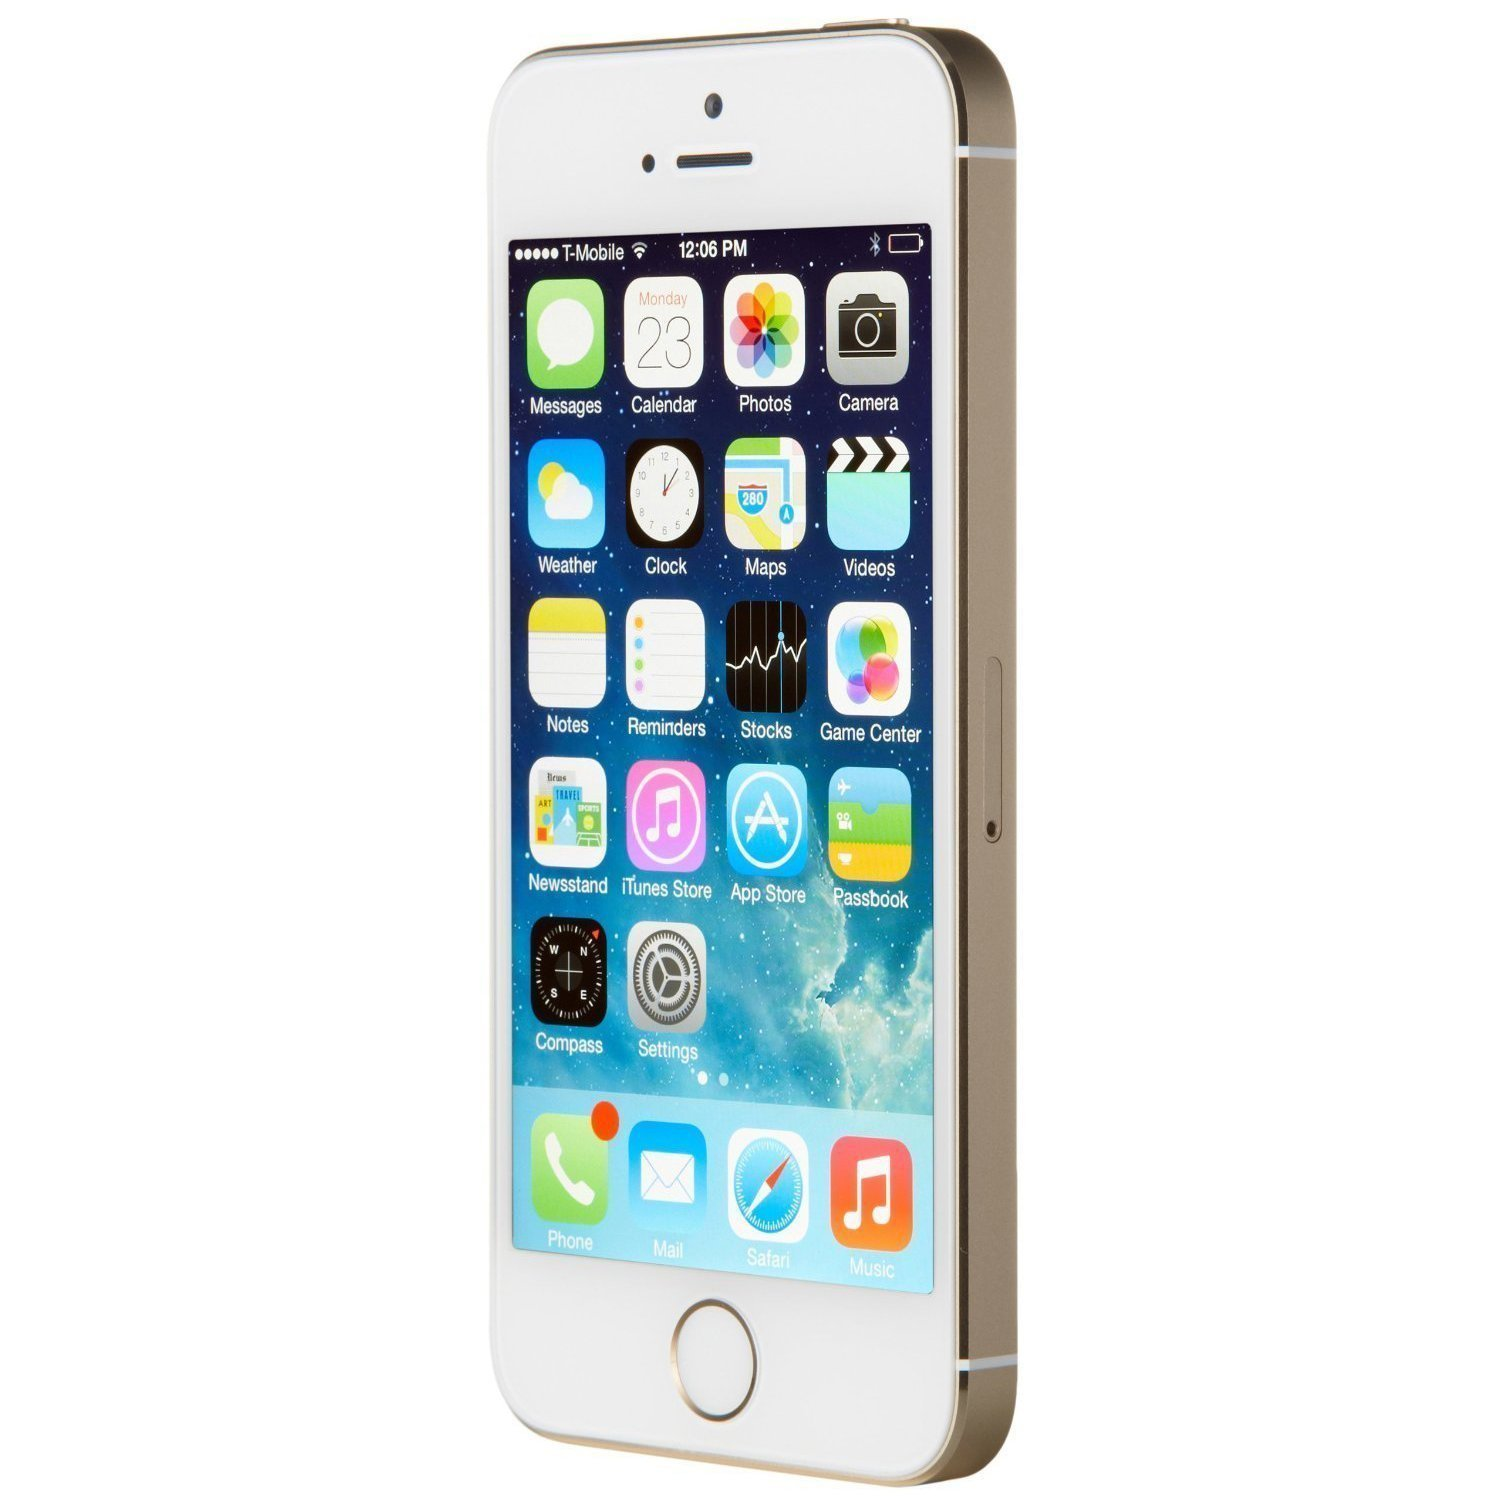 factory refurbished iphone 5s refurbished apple iphone 5s 16gb factory unlocked 14068